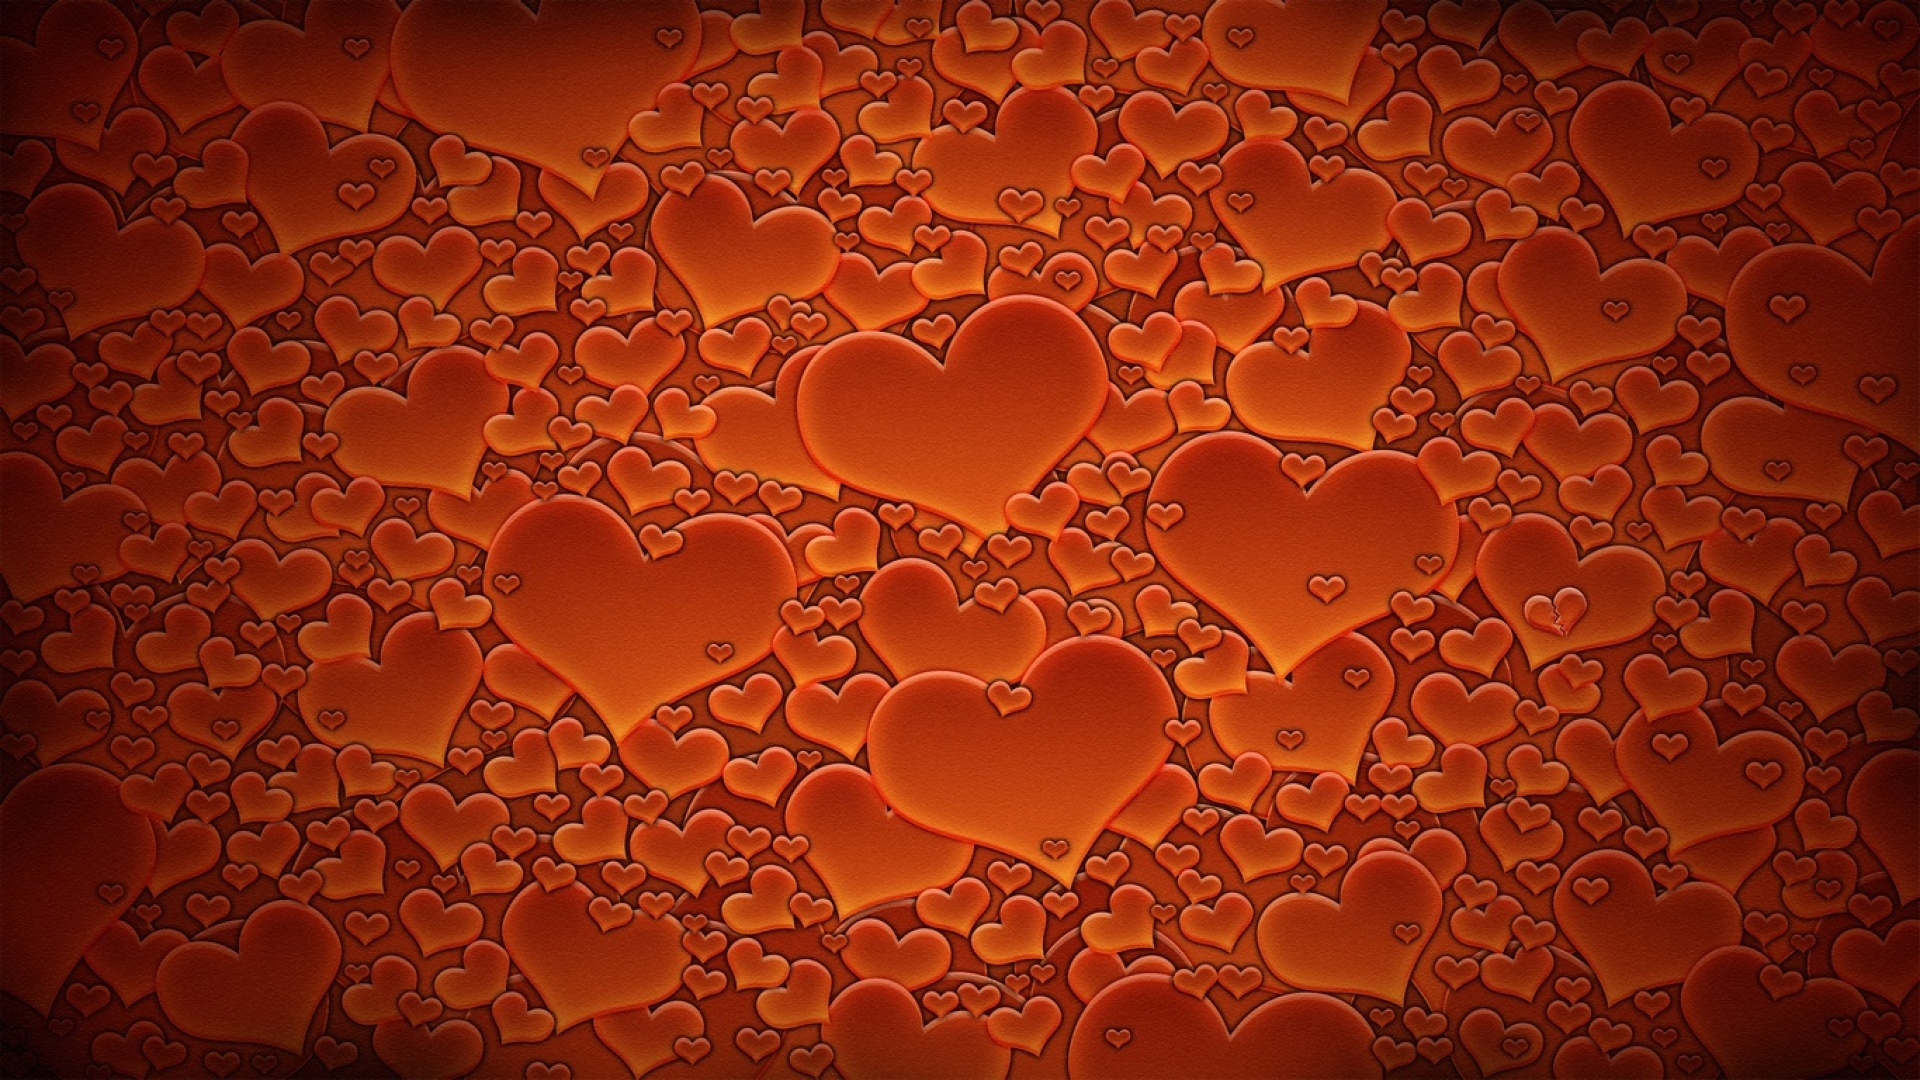 23138 download wallpaper Holidays, Background, Hearts, Love, Valentine's Day screensavers and pictures for free